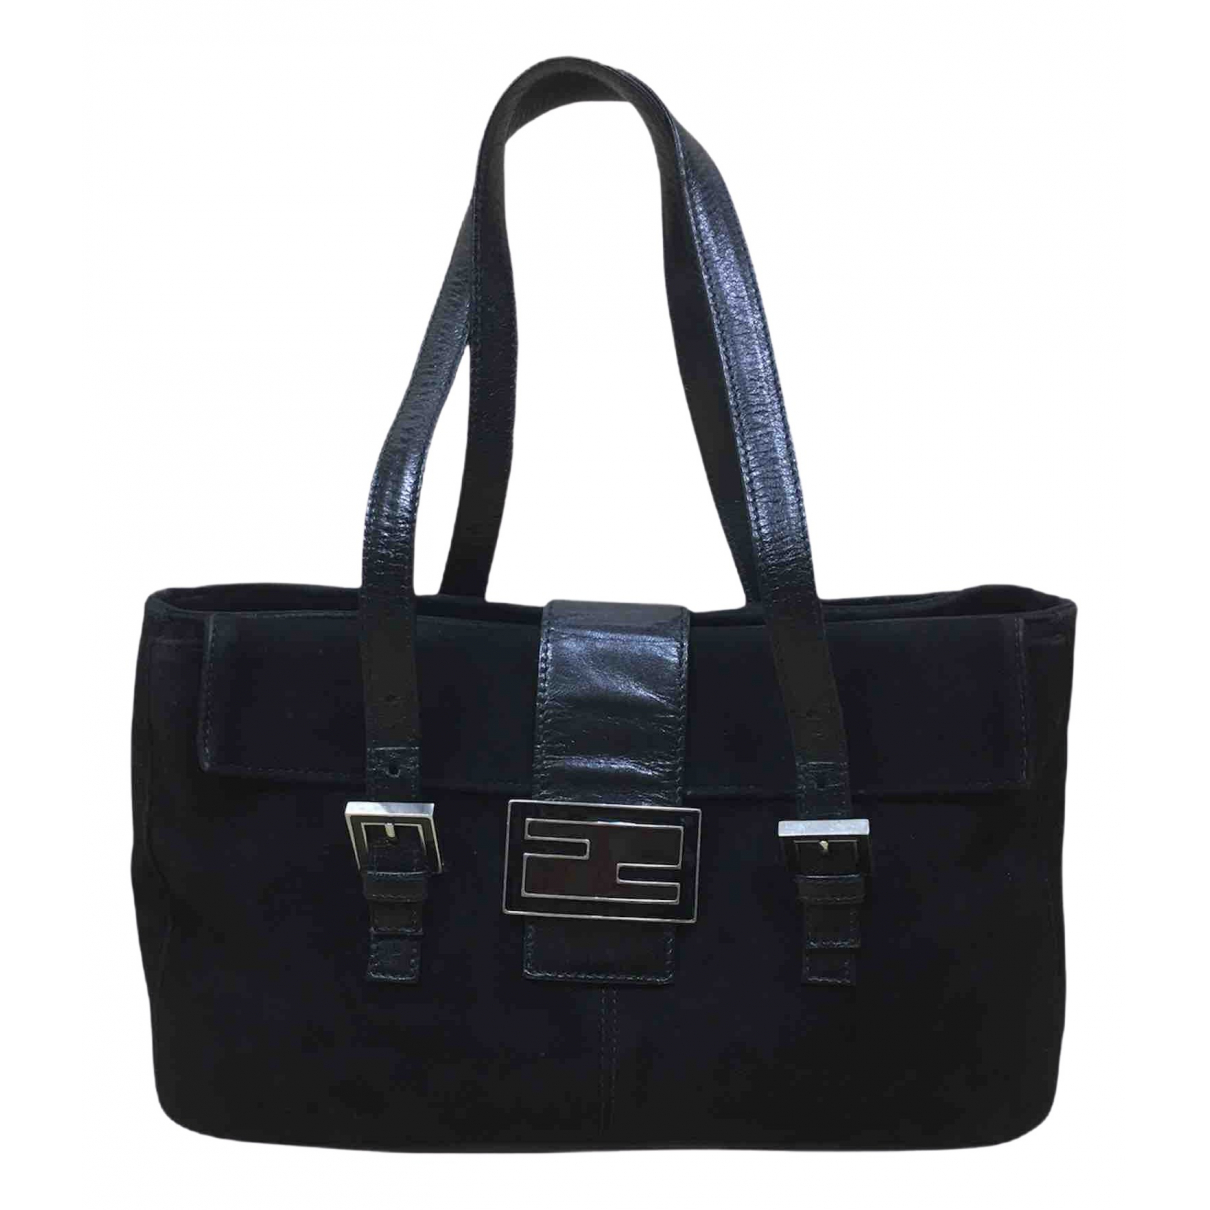 Fendi \N Black Cloth handbag for Women \N